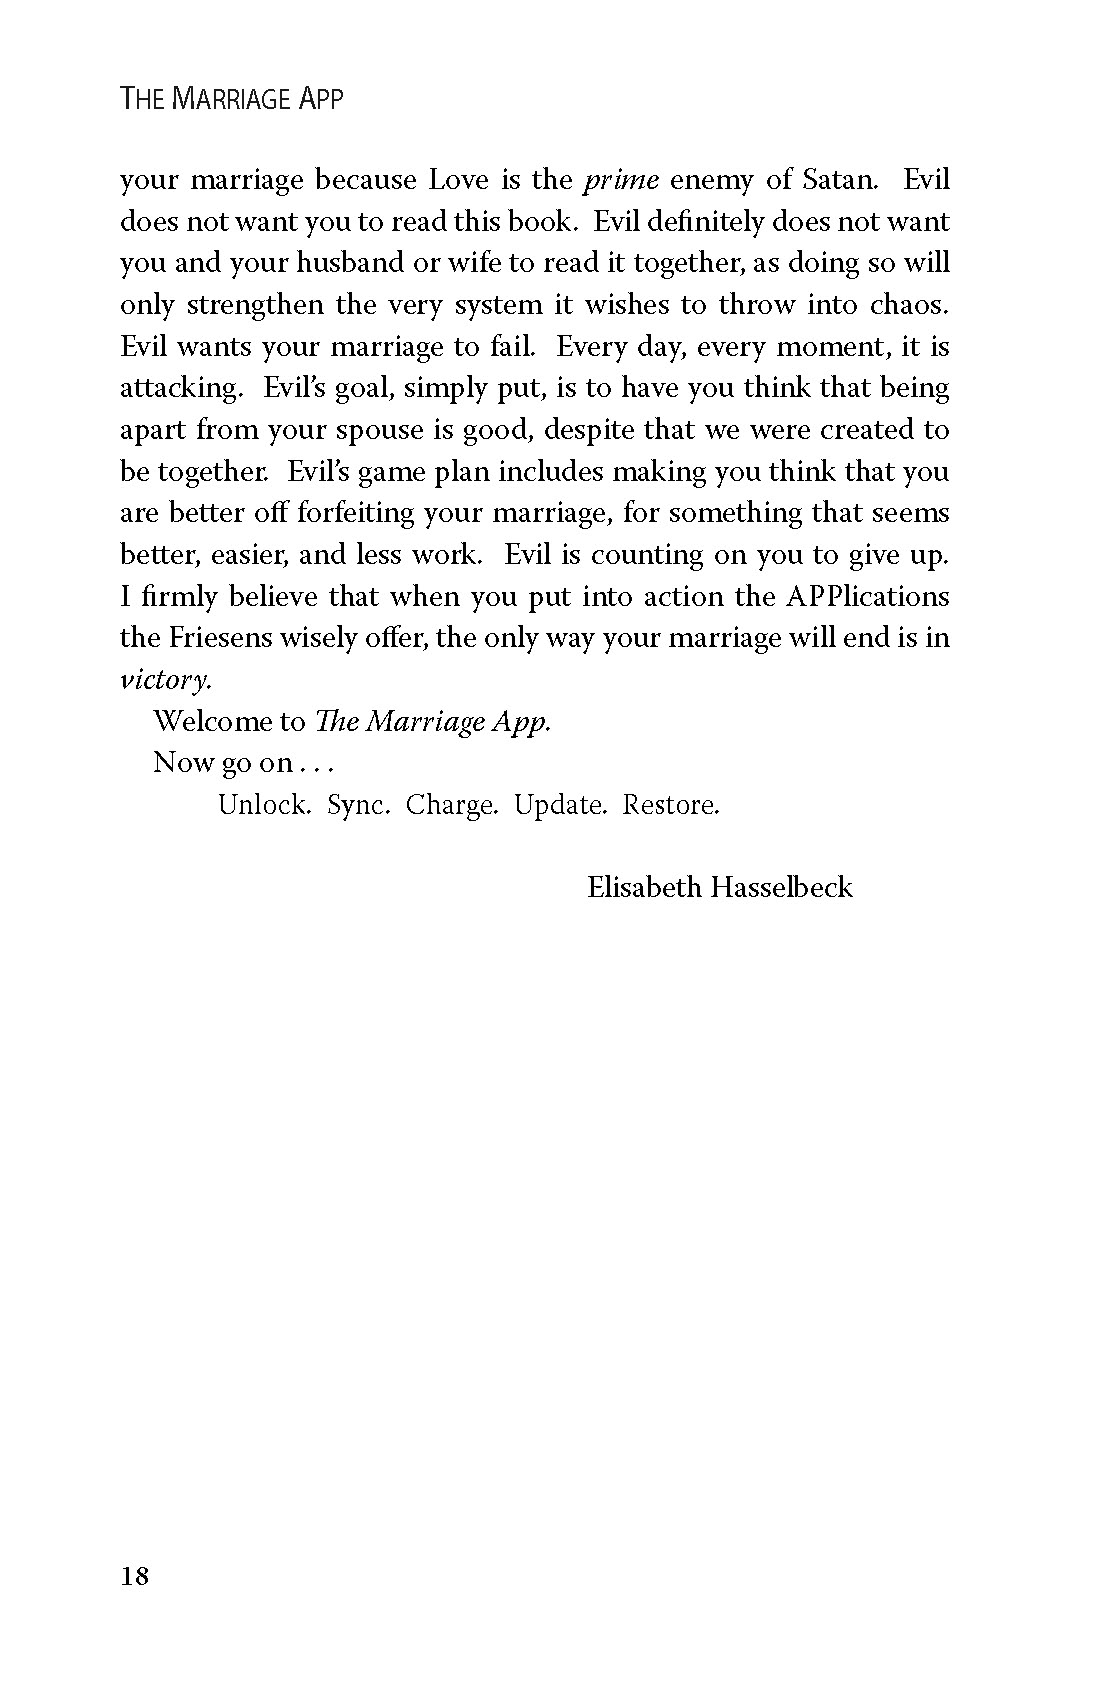 TheMarriageApp-samplepages_Page_07.jpg